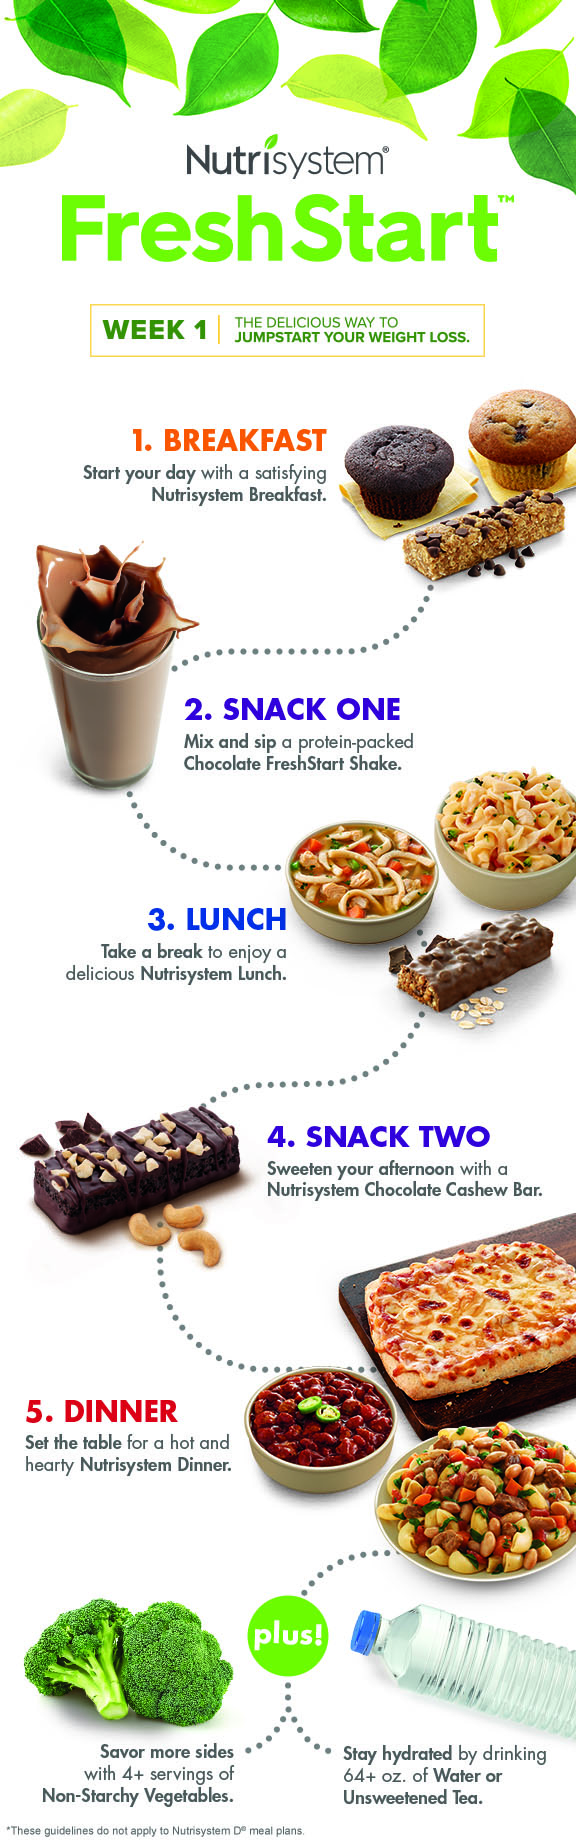 Nutrisystem Review - All You Need To